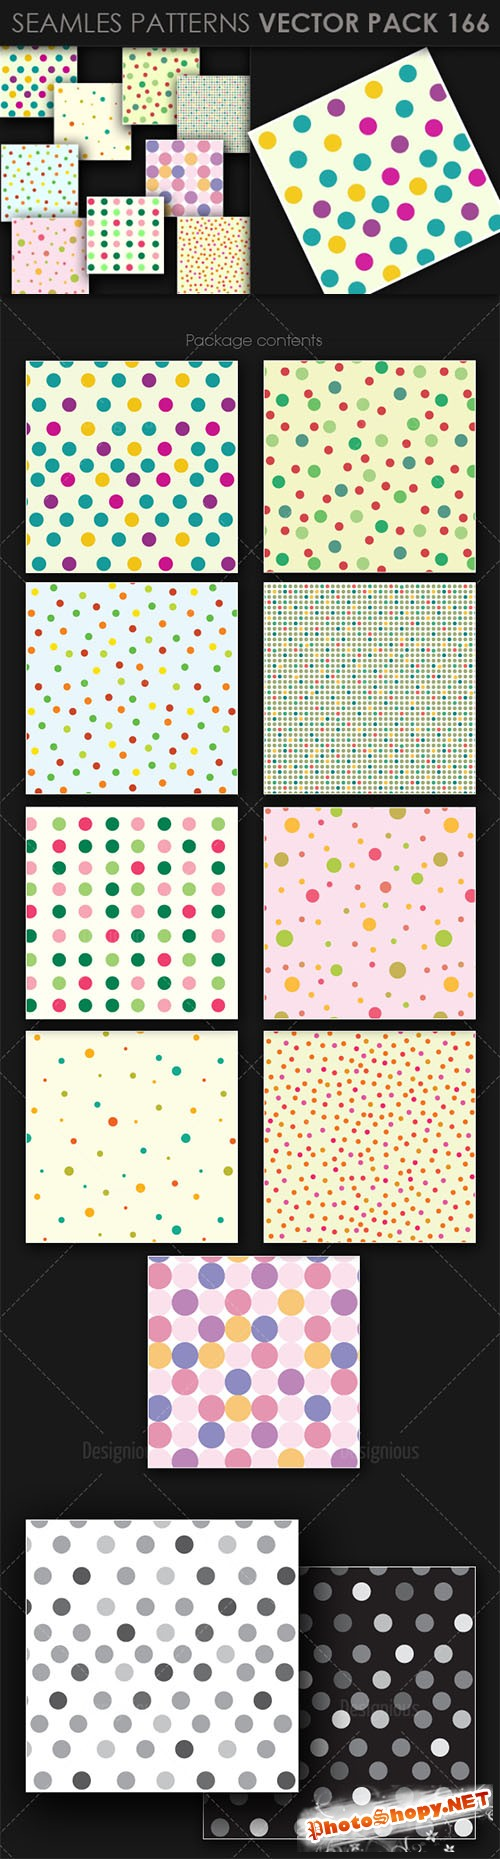 9 Seamless Patterns Vector Pack 166